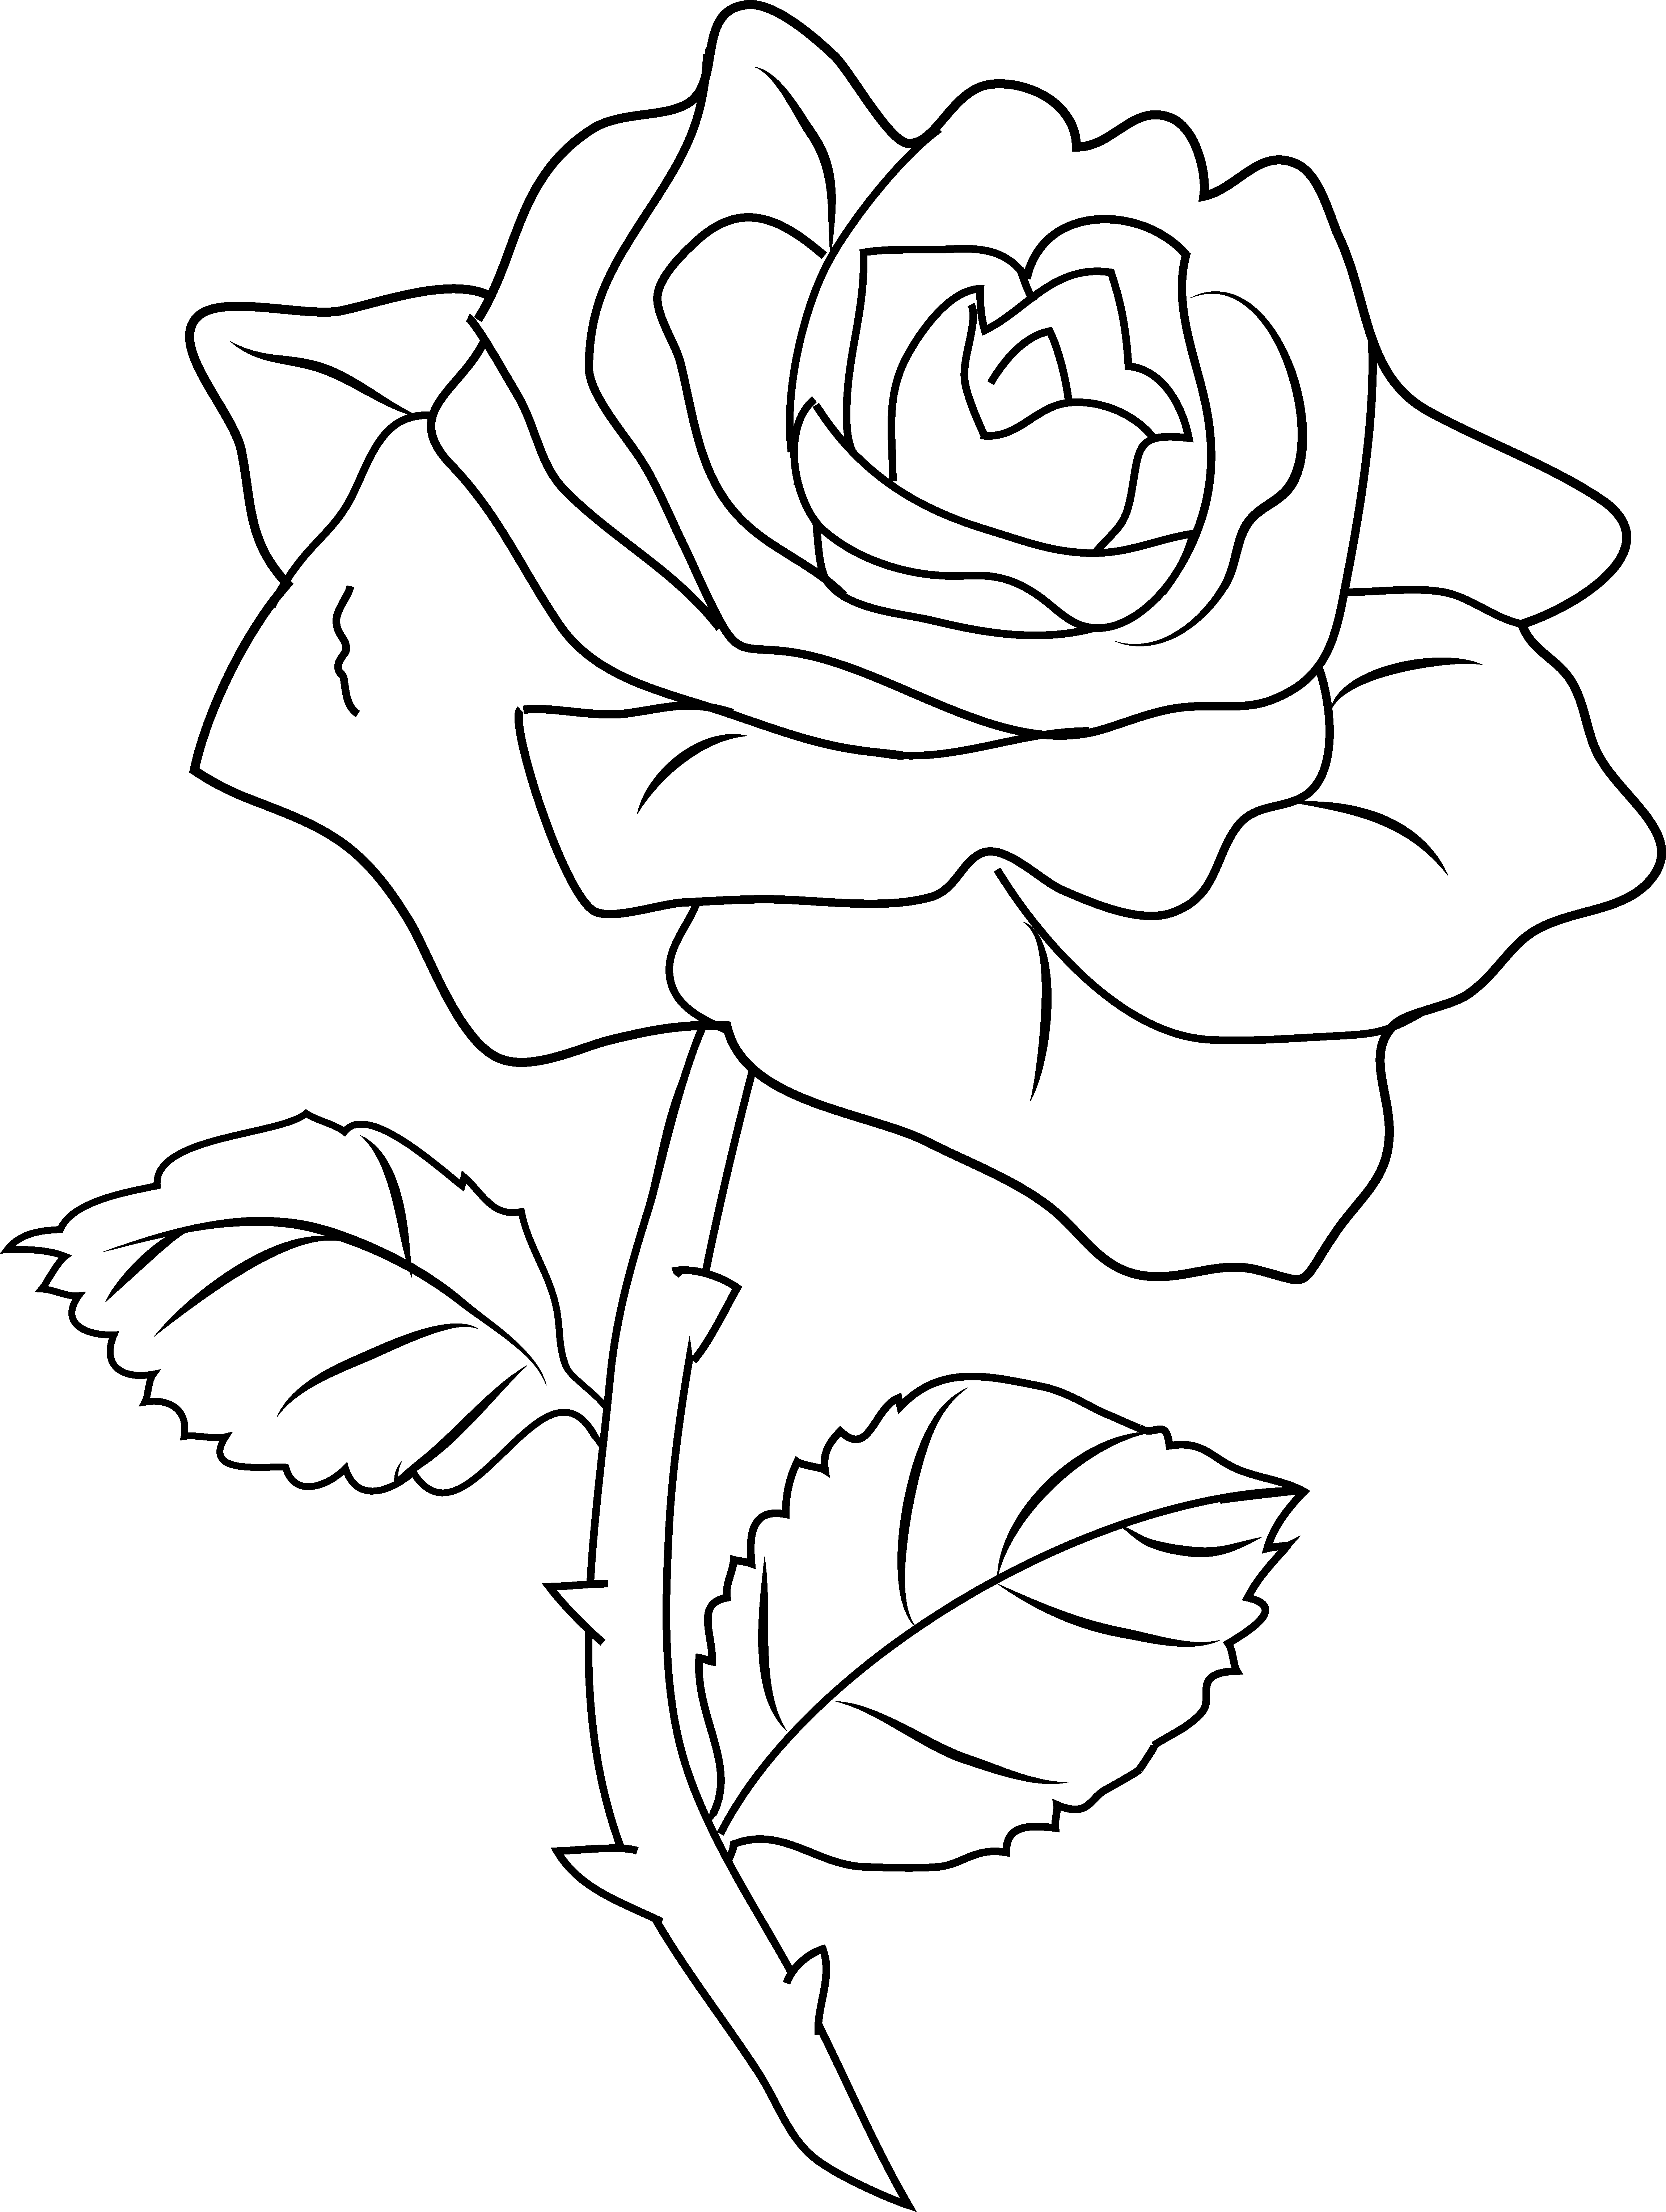 rose colouring pages coloring ville rose colouring pages